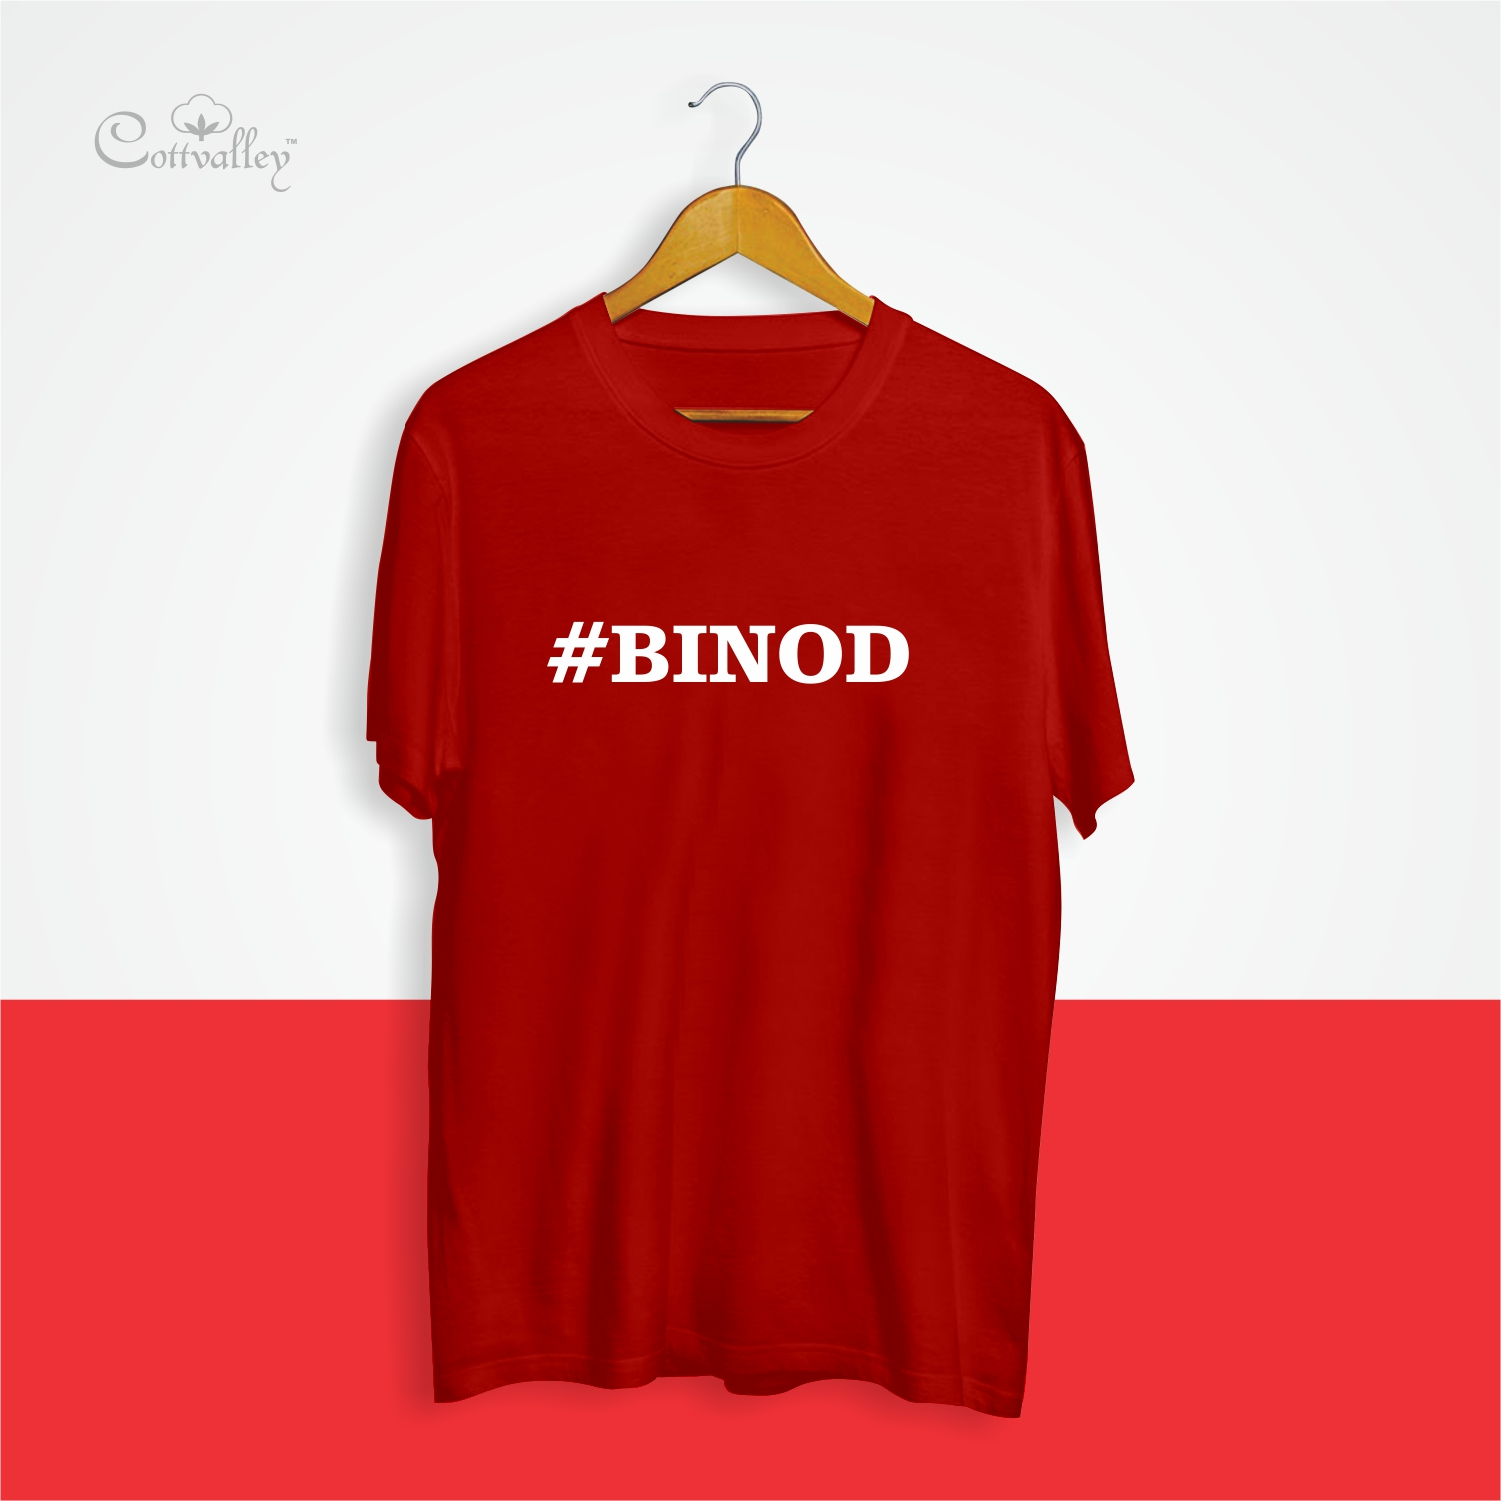 Cottvalley-Trending-Tshirt-Binod-Mem-Red